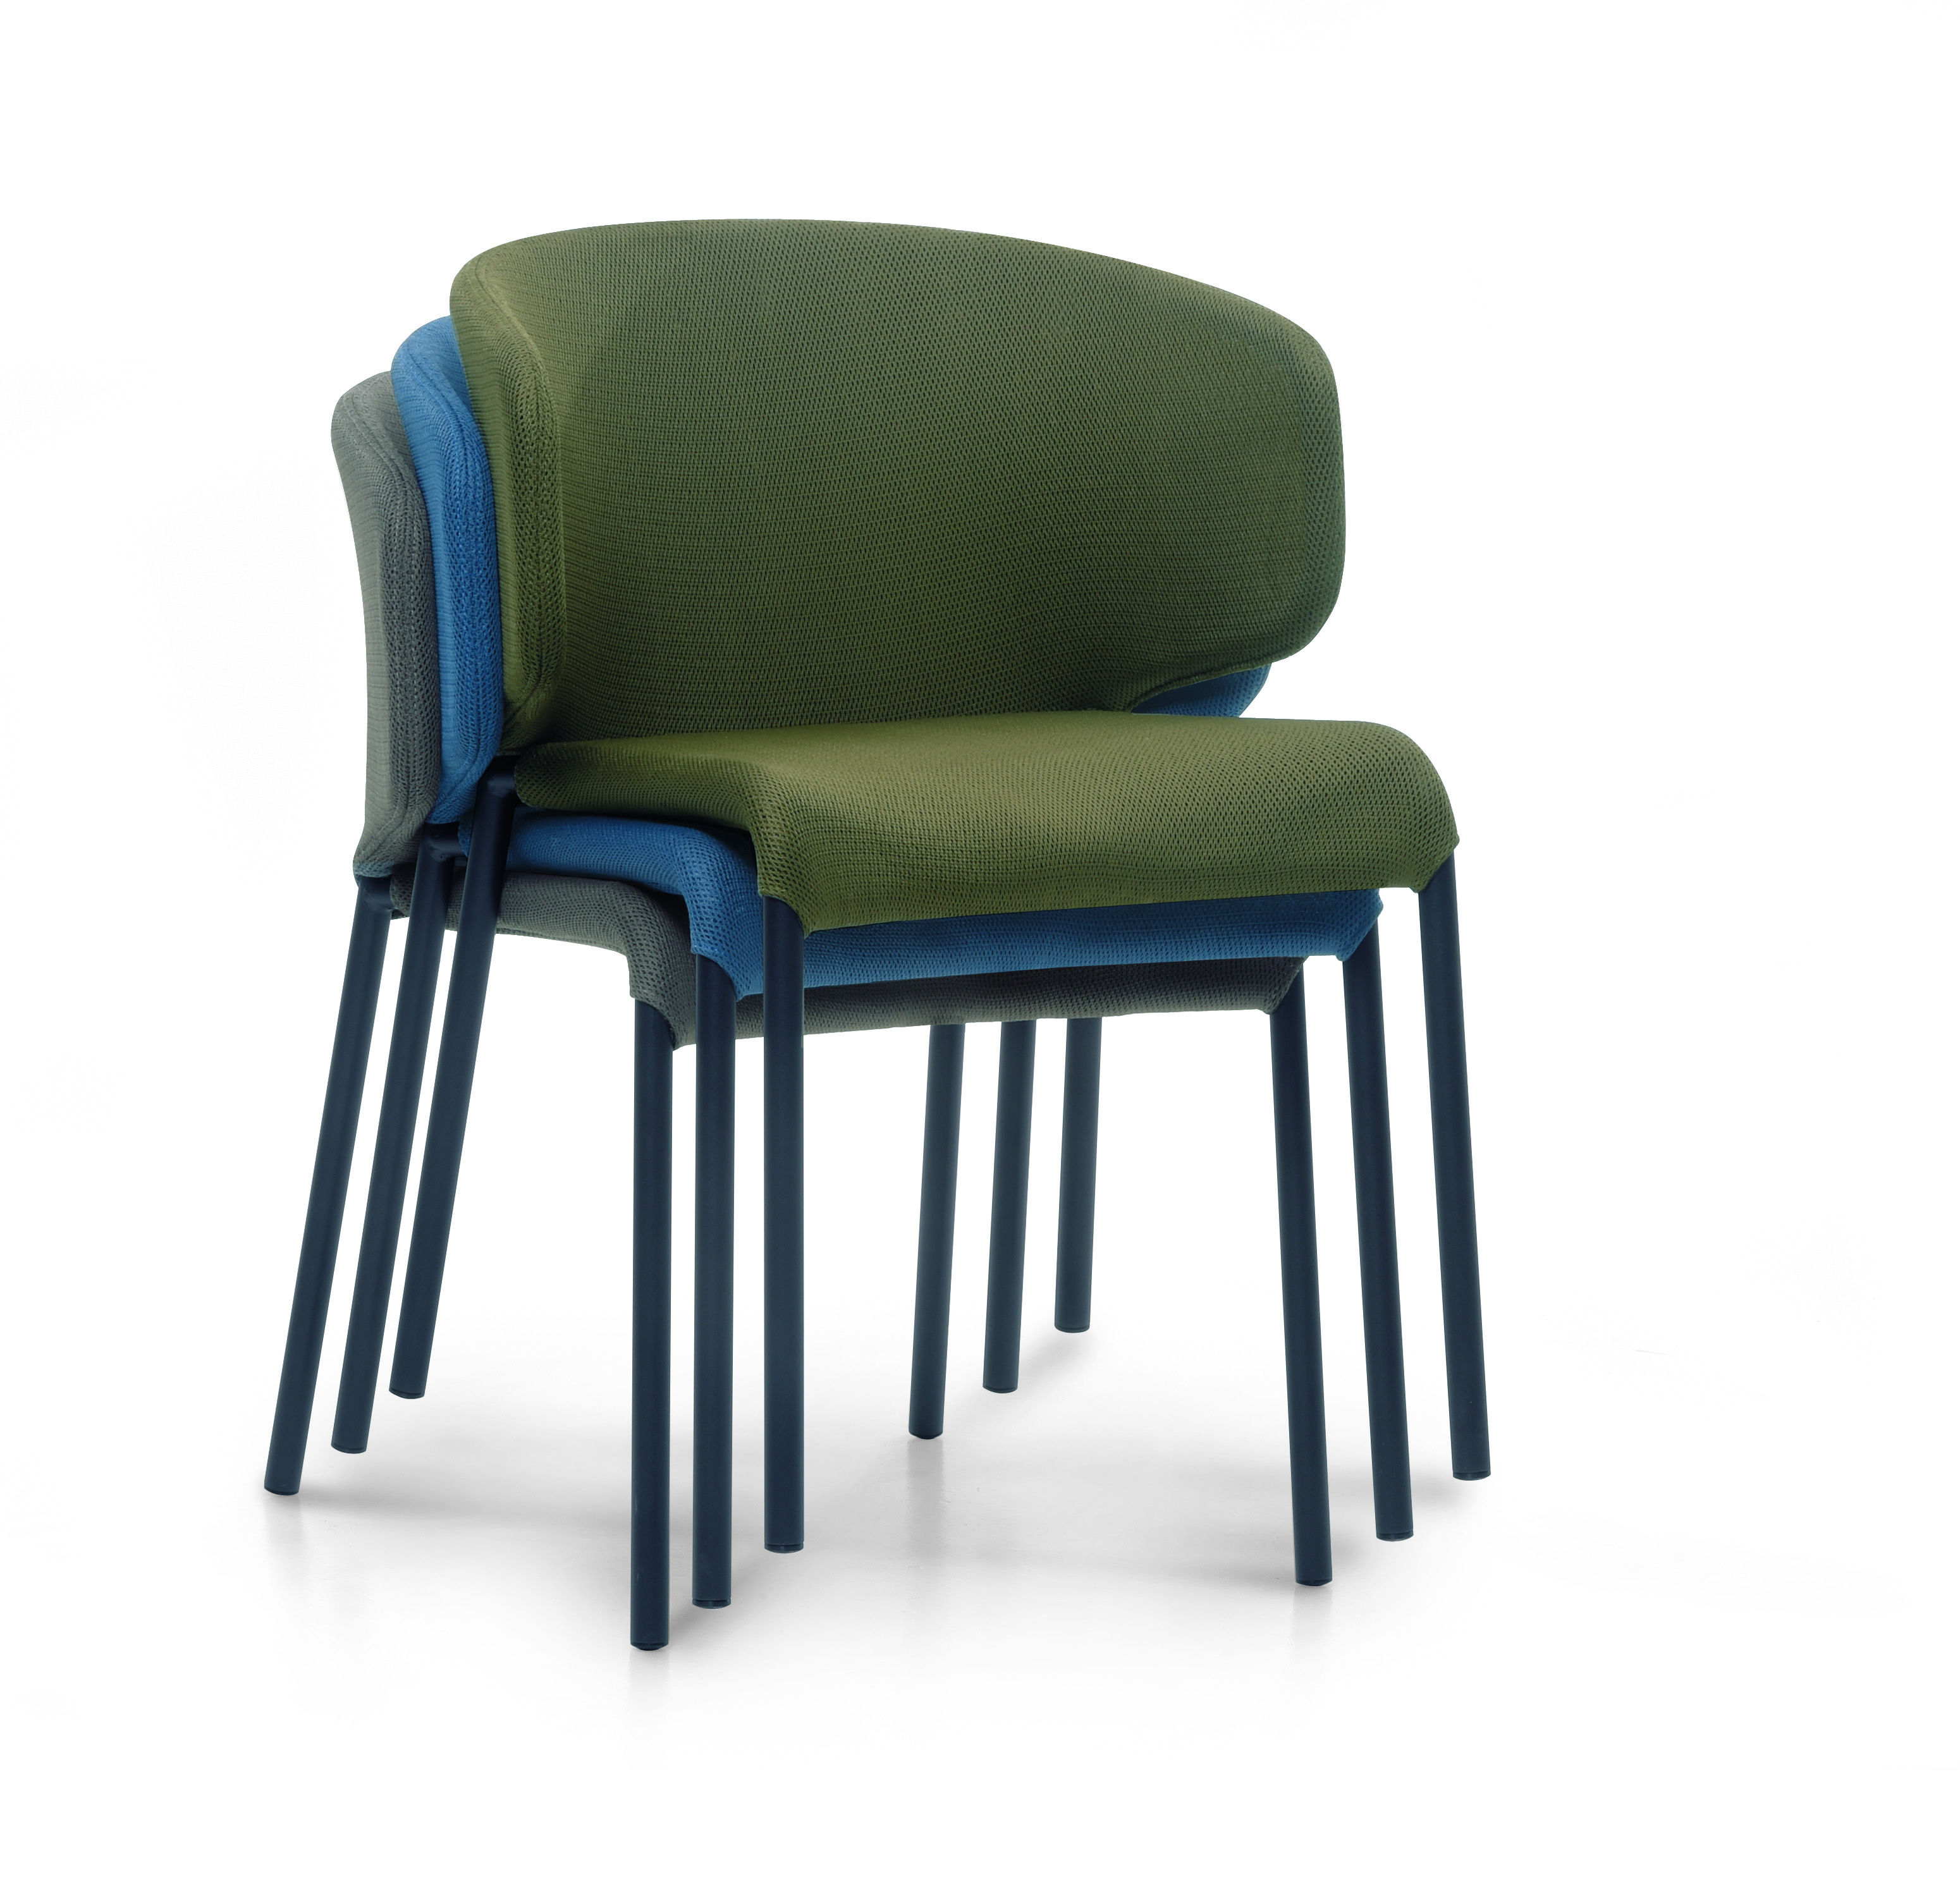 Double 011 Stackable Dining Chair